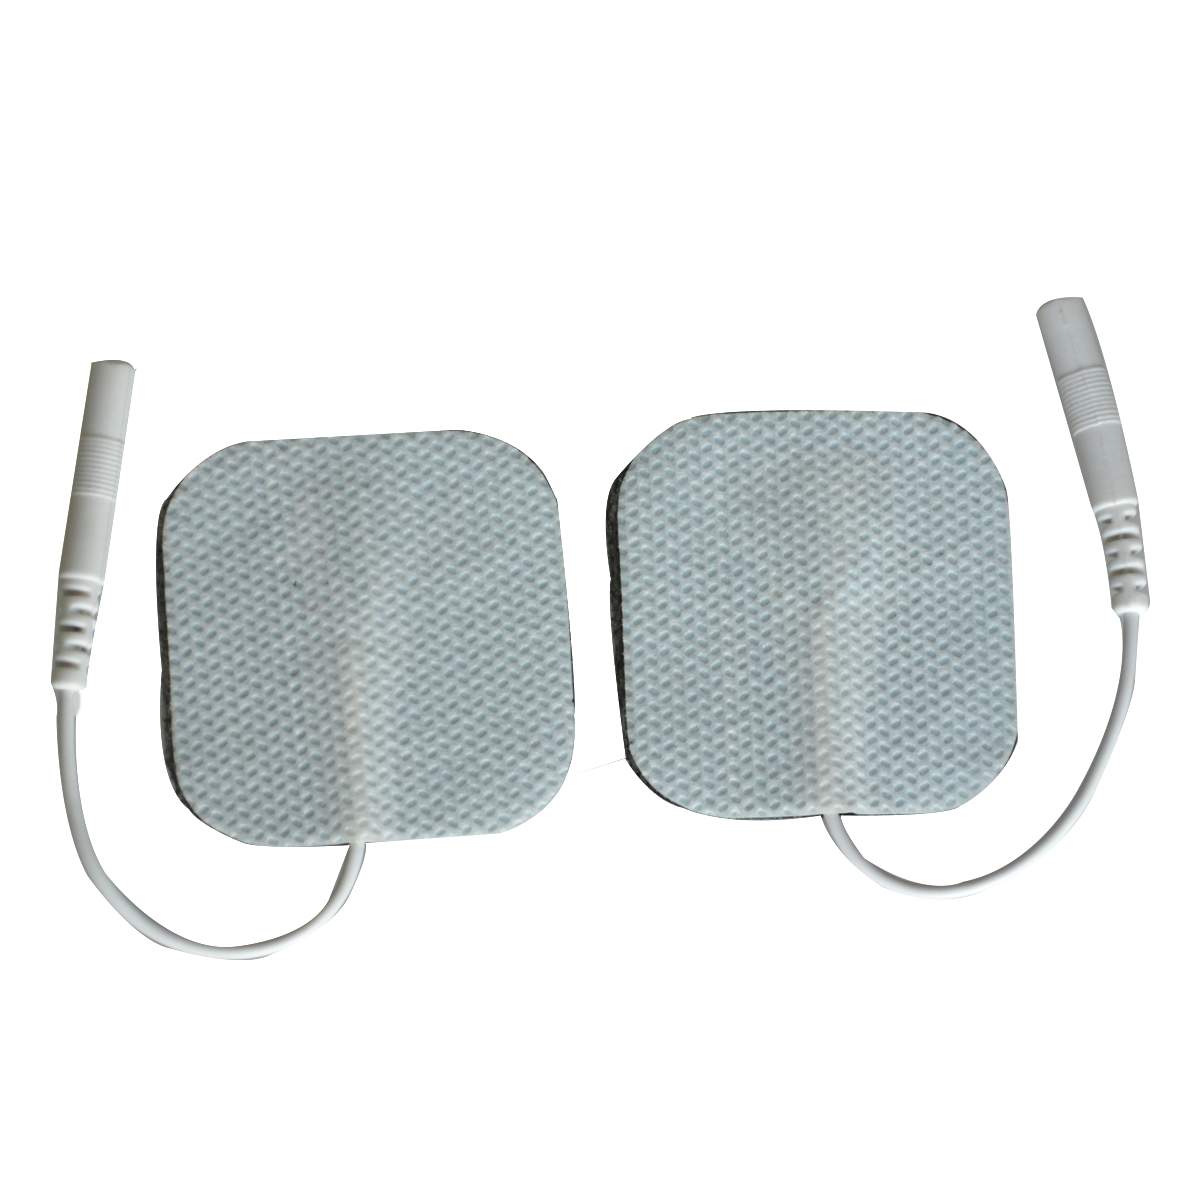 100Pairs/Lot Tens Replacement Electrotherapy Reusale Self-adhesive Electrode Pads For Physiotherapy Massager 4x4cm 2.0mm Plug корзинки migura корзина для хранения